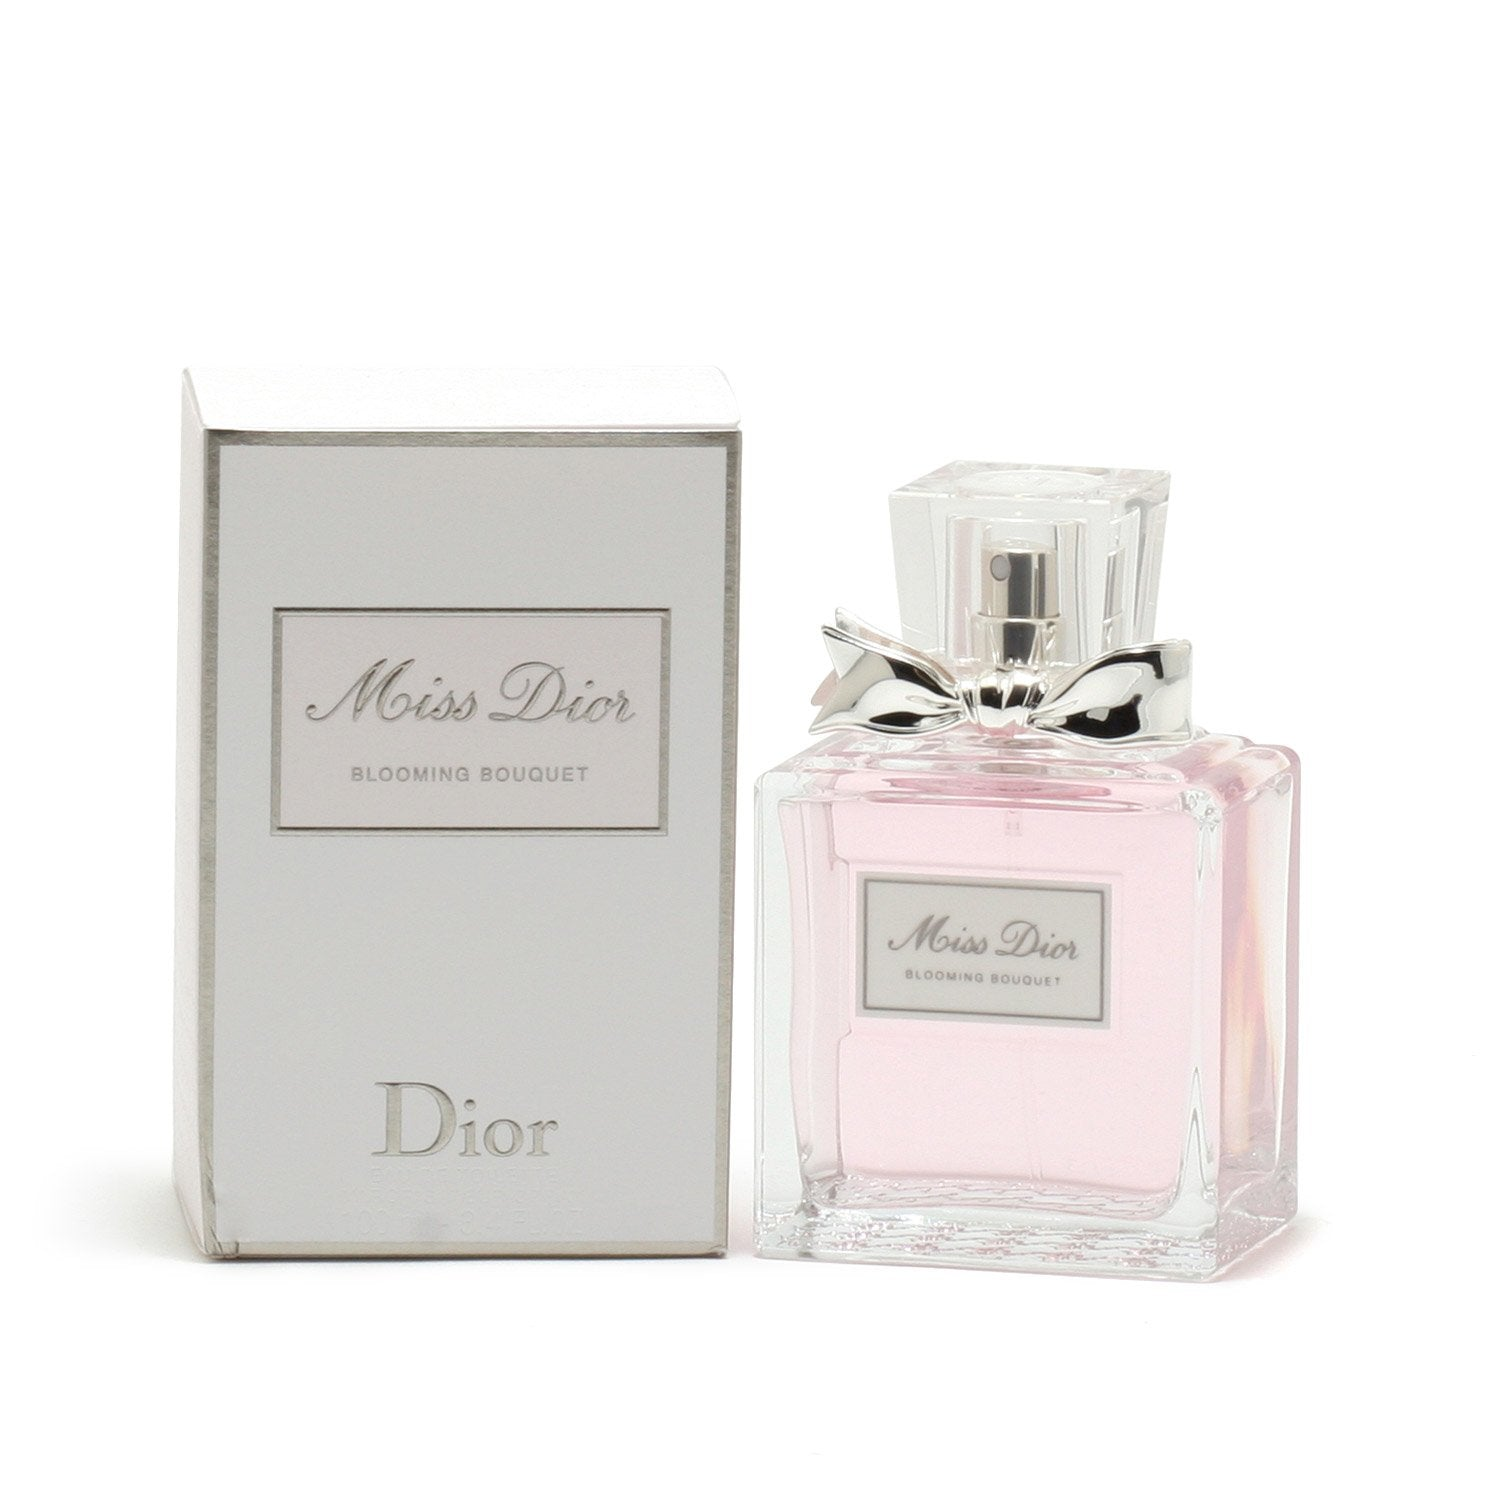 Perfume - MISS DIOR BLOOMING BOUQUET FOR WOMEN BY CHRISTIAN DIOR - EAU DE TOILETTE SPRAY